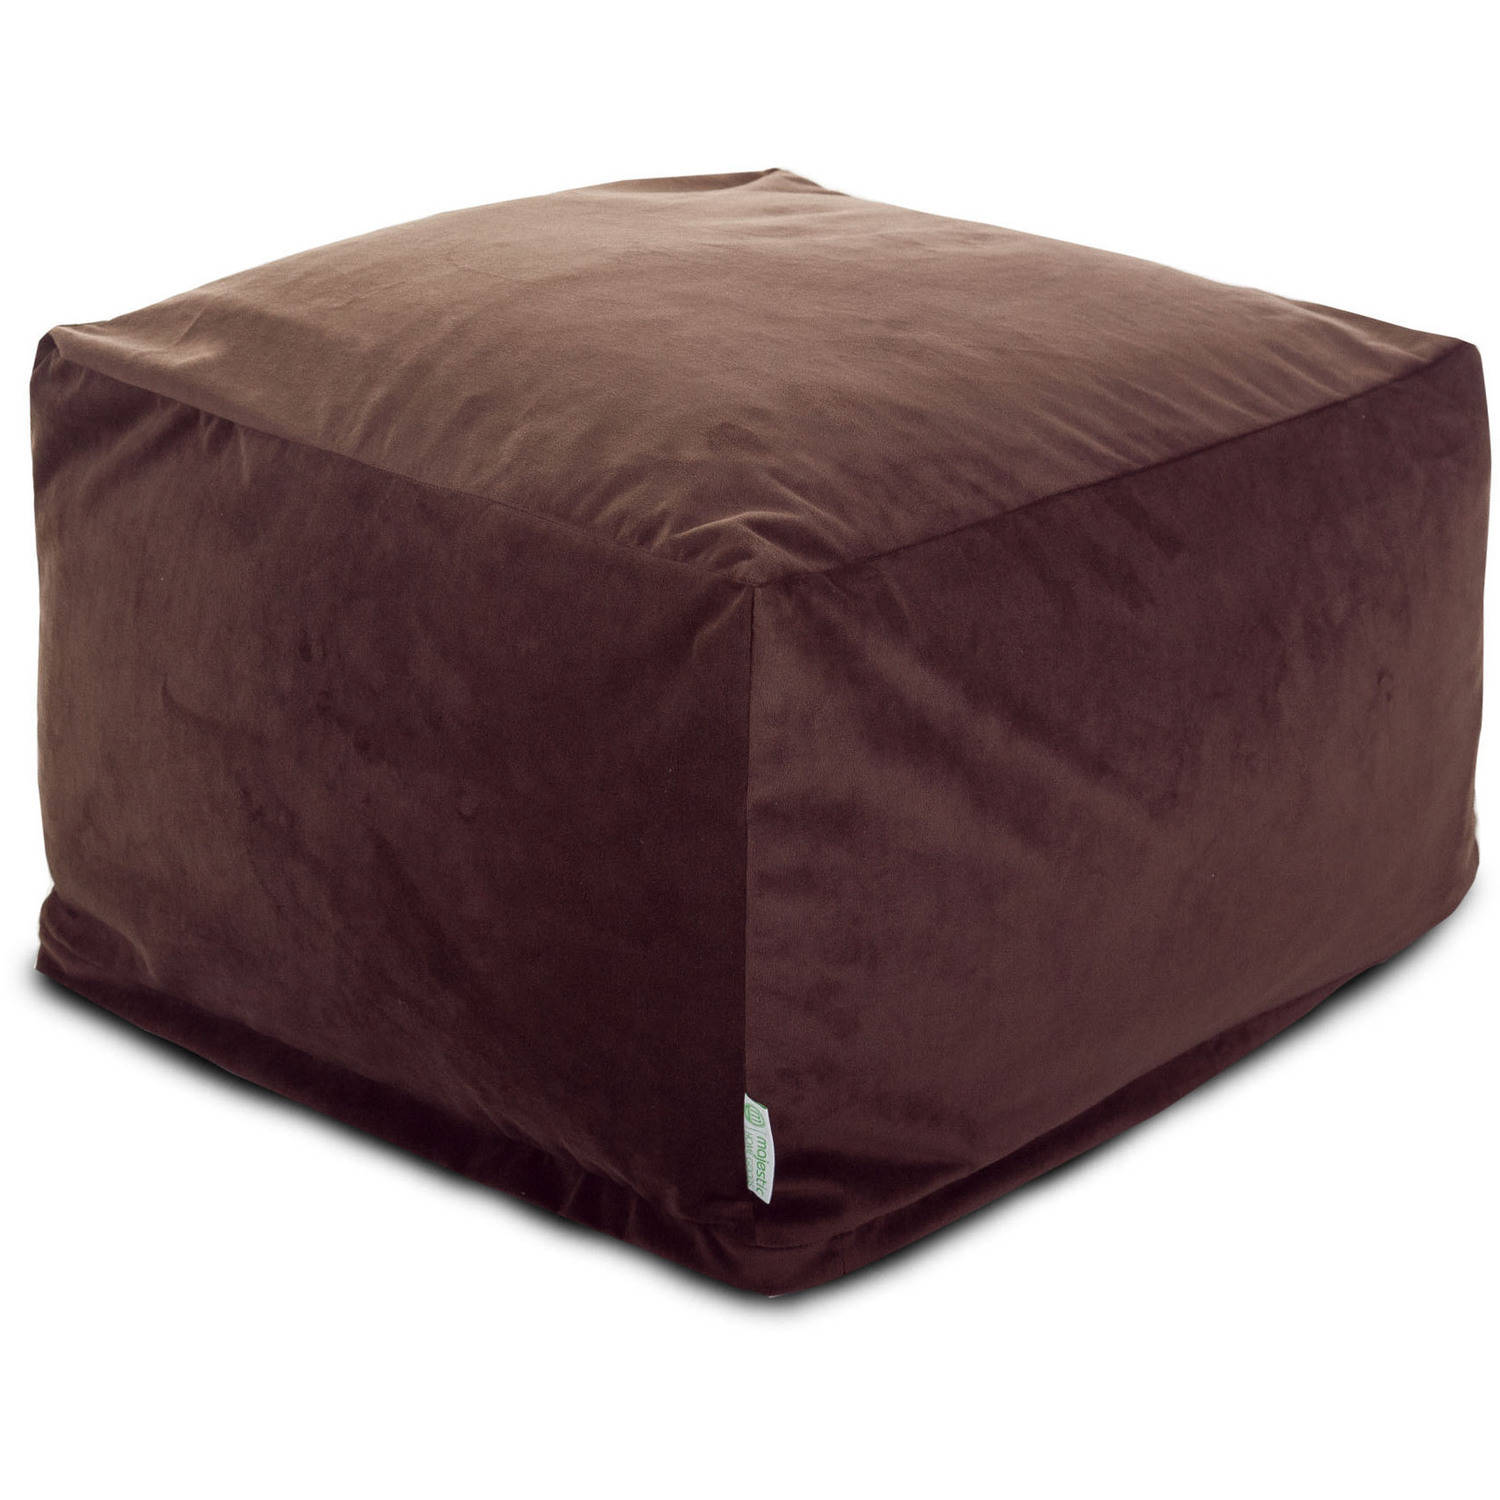 Majestic Home Goods Velvet Bean Bag Ottoman